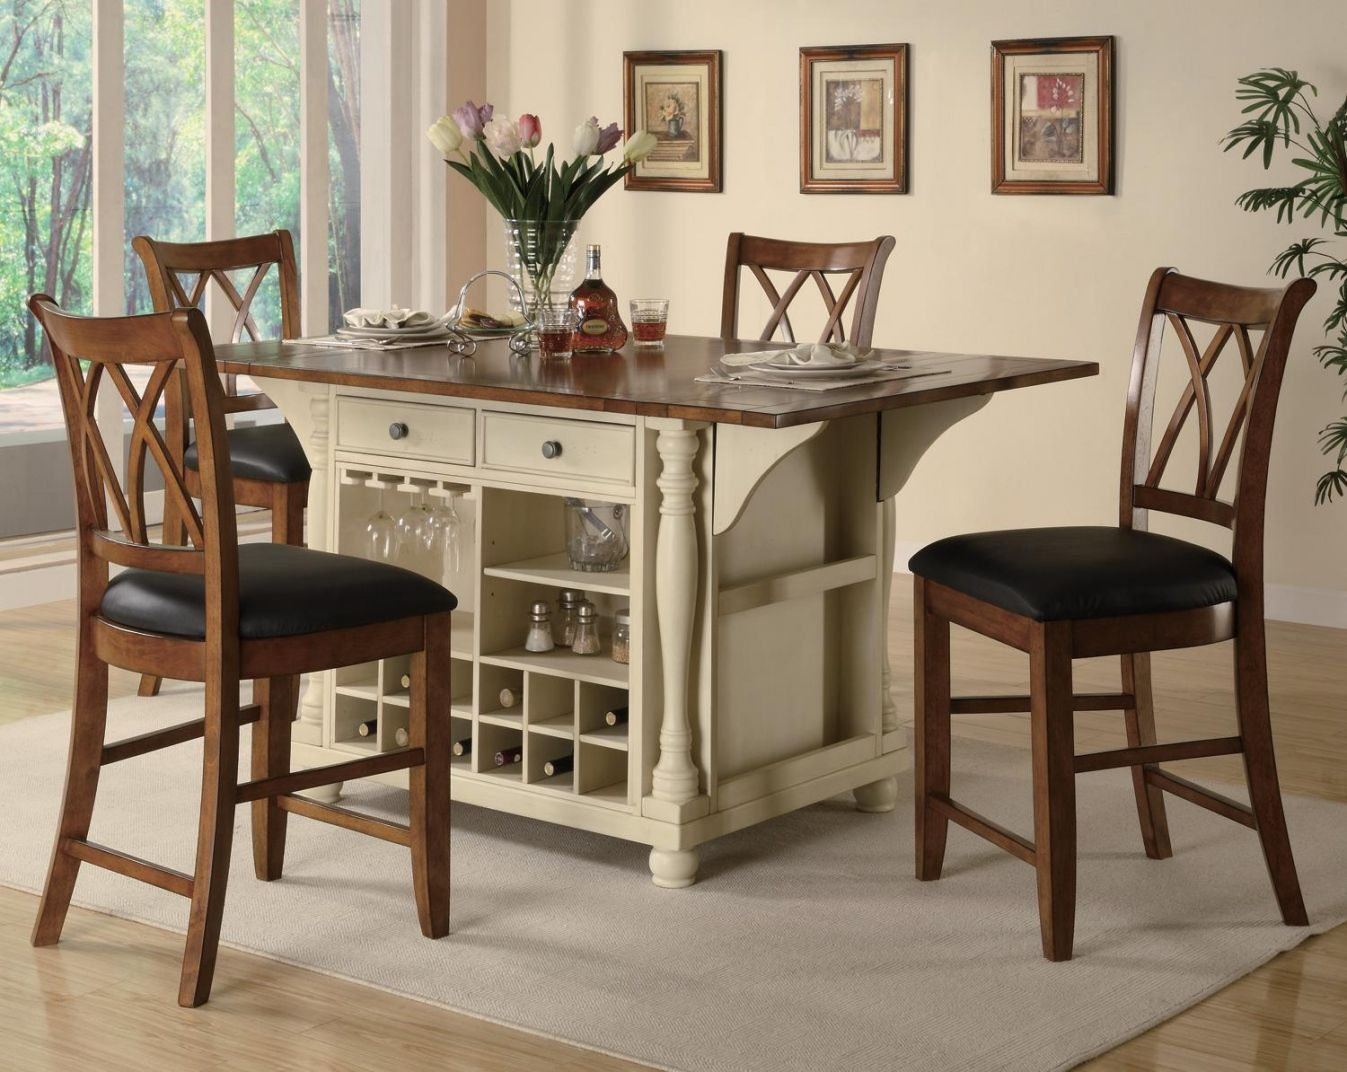 tall kitchen table with stools modern wood furniture check more at http - Tall Kitchen Table Chairs